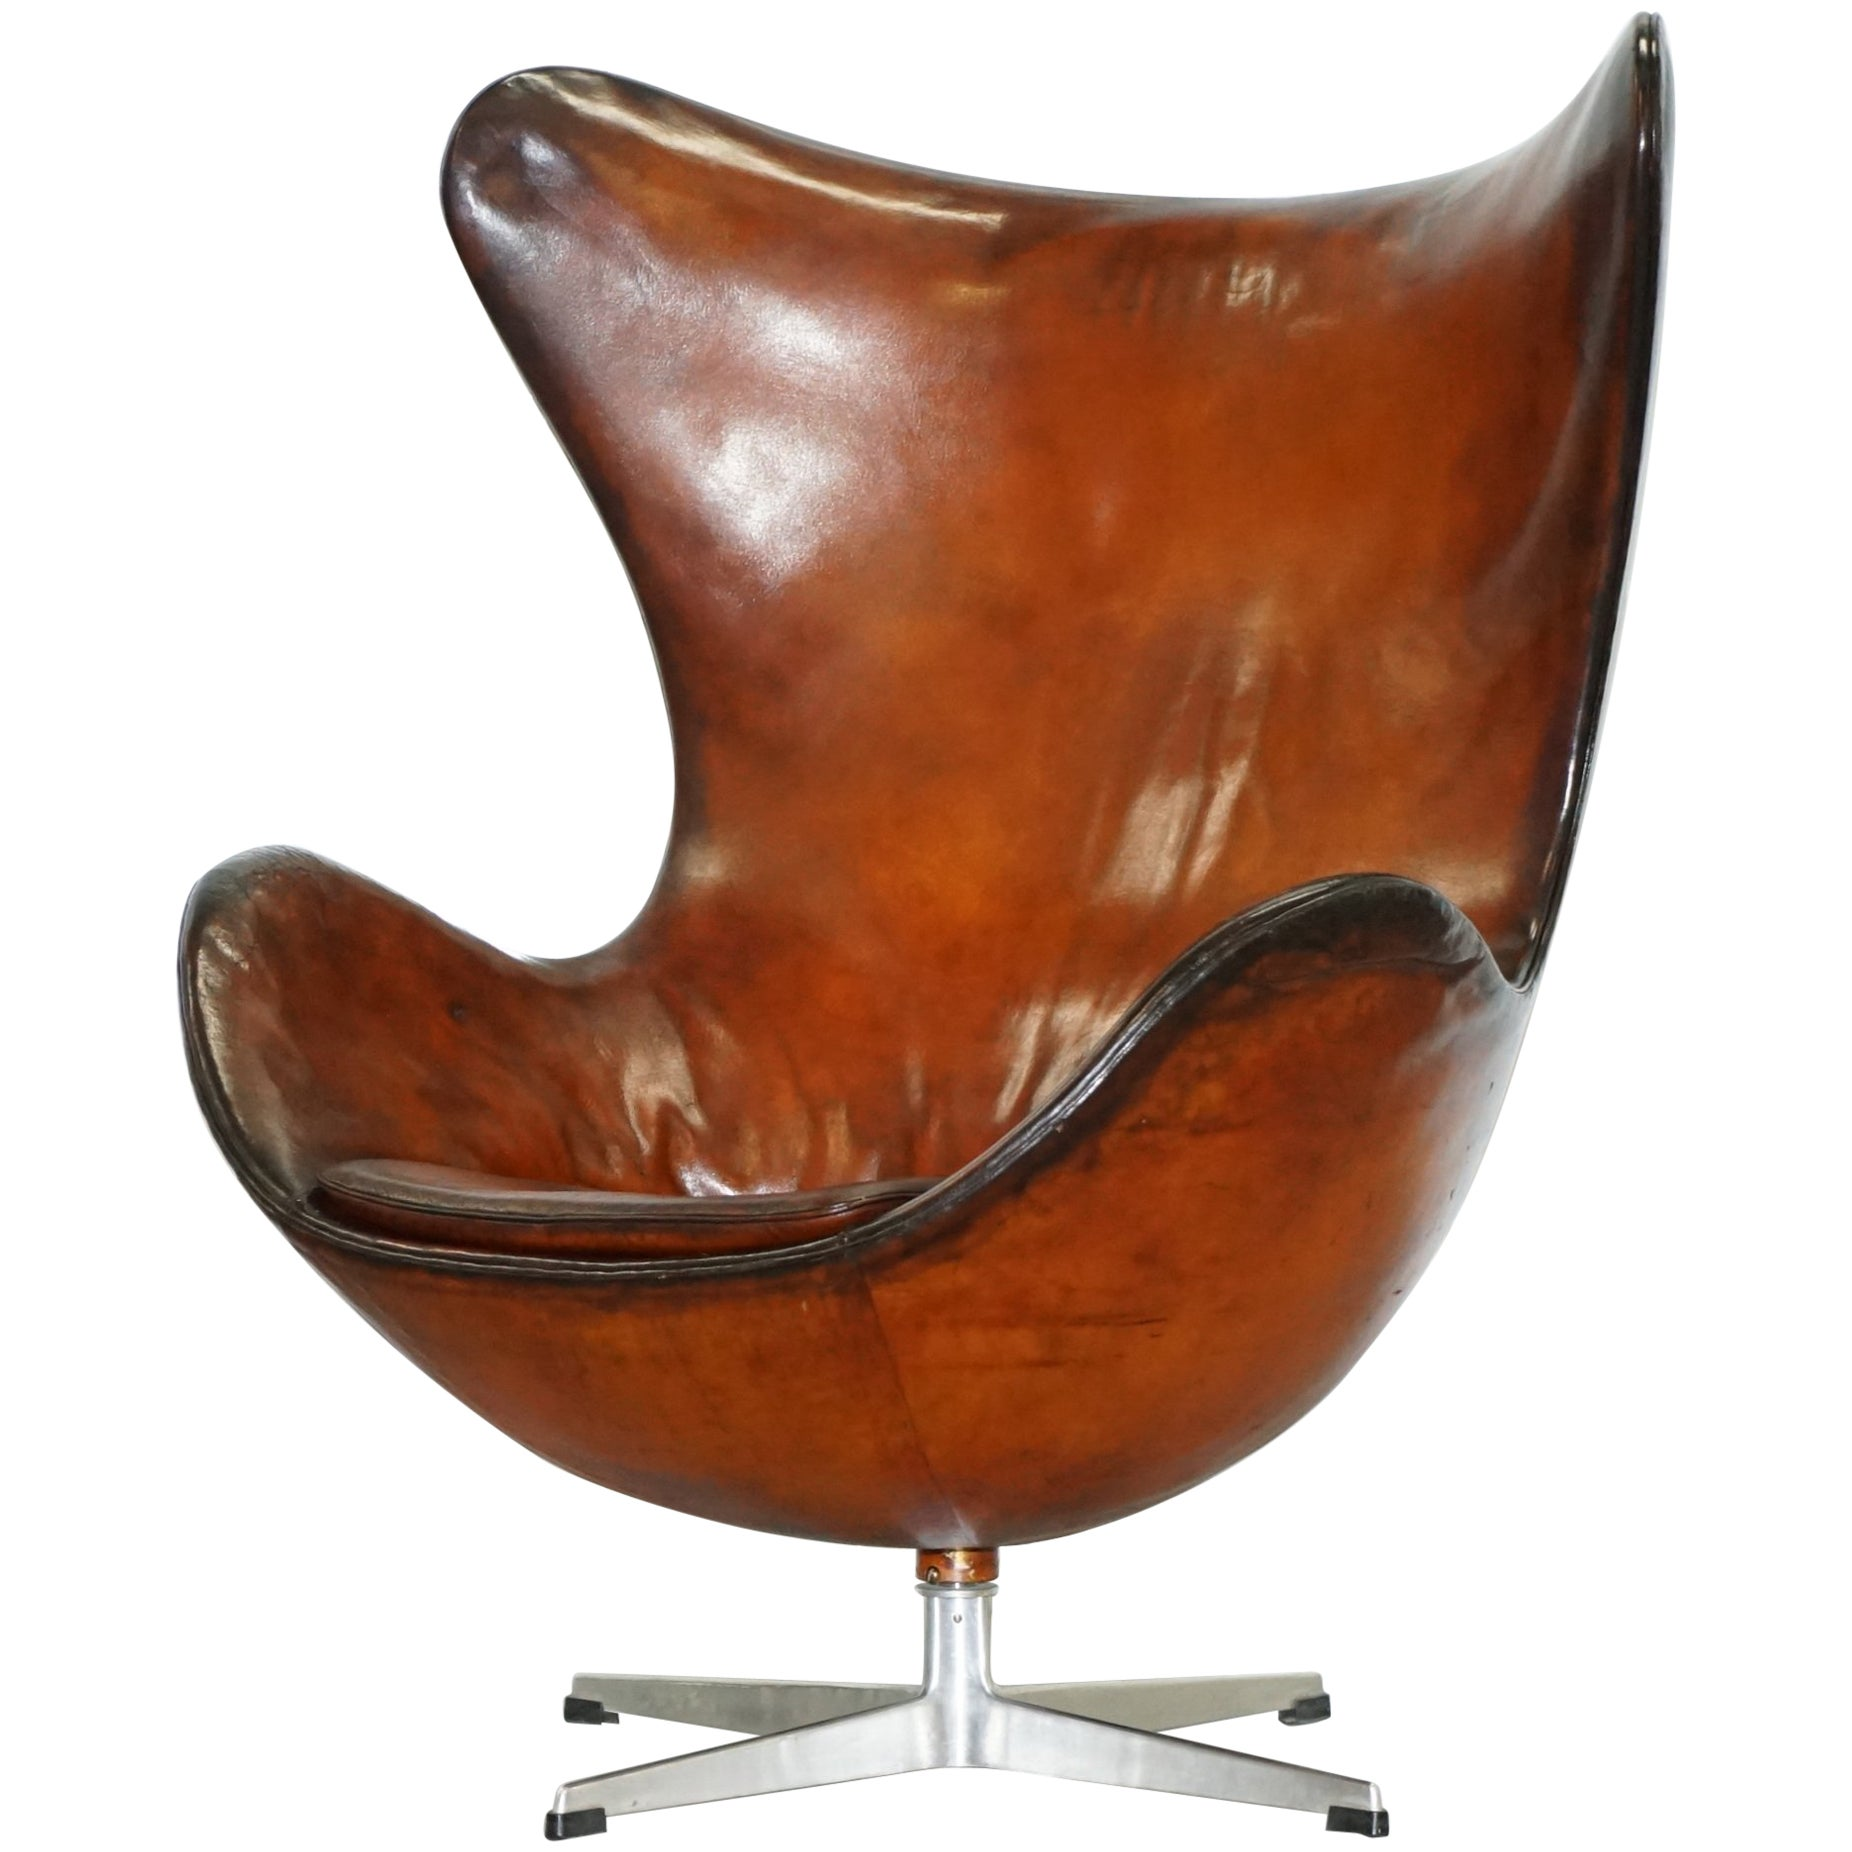 Egg Chair For Sale Original 1963 Fritz Hansen Egg Chair Model Number 3316 Hand Dyed Brown Leather